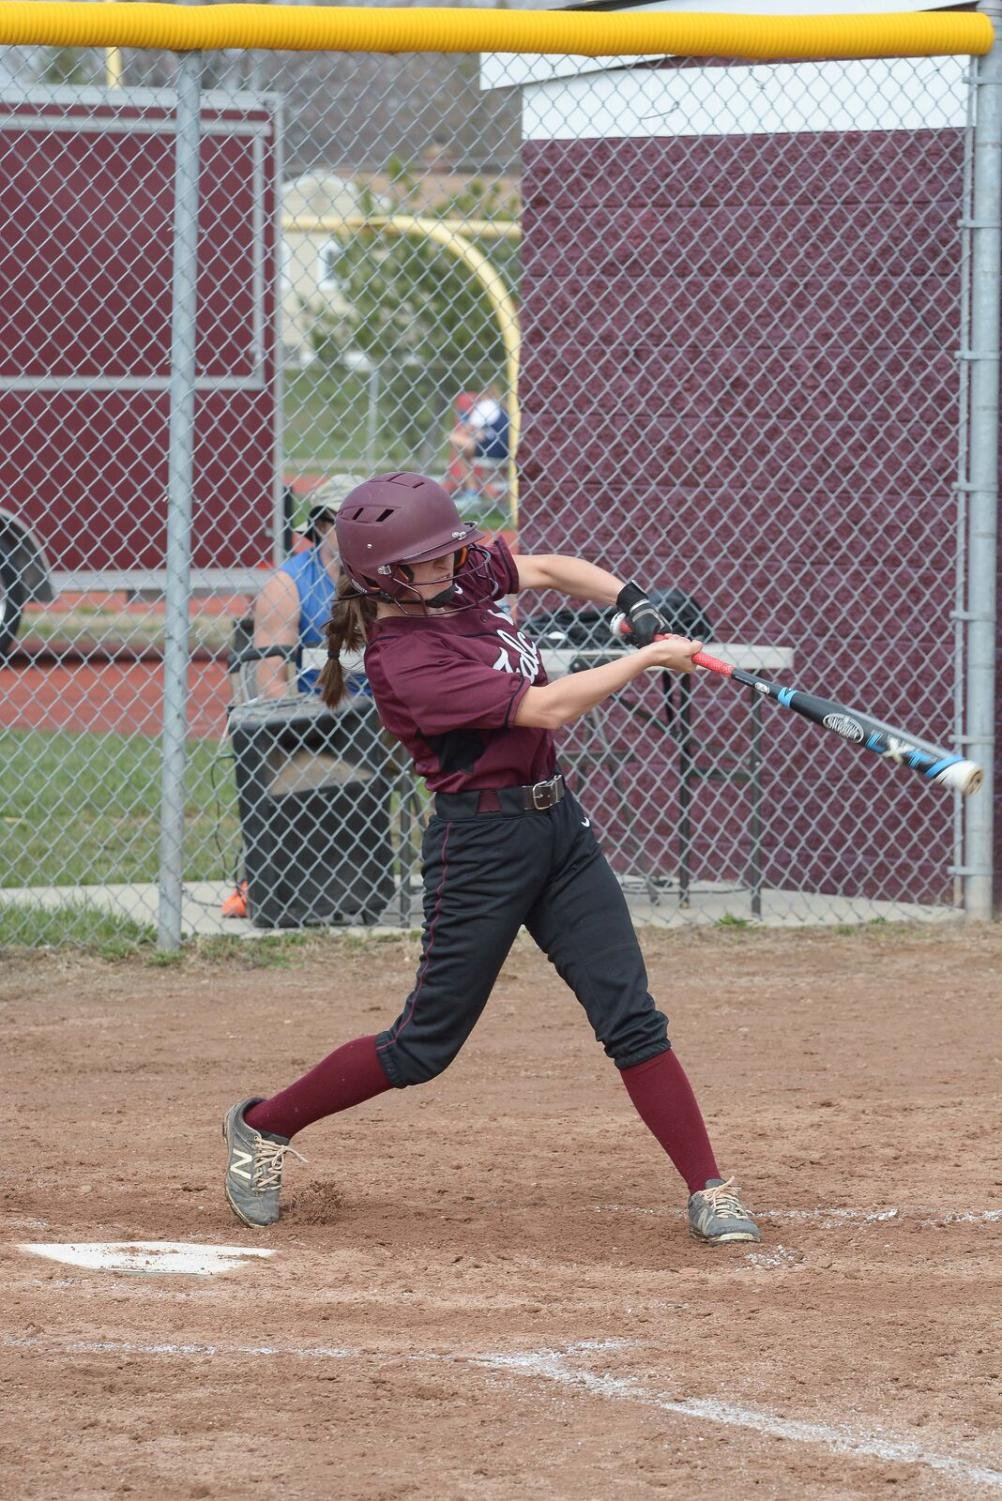 Jackie Nicholson htting a double in A home game last season.